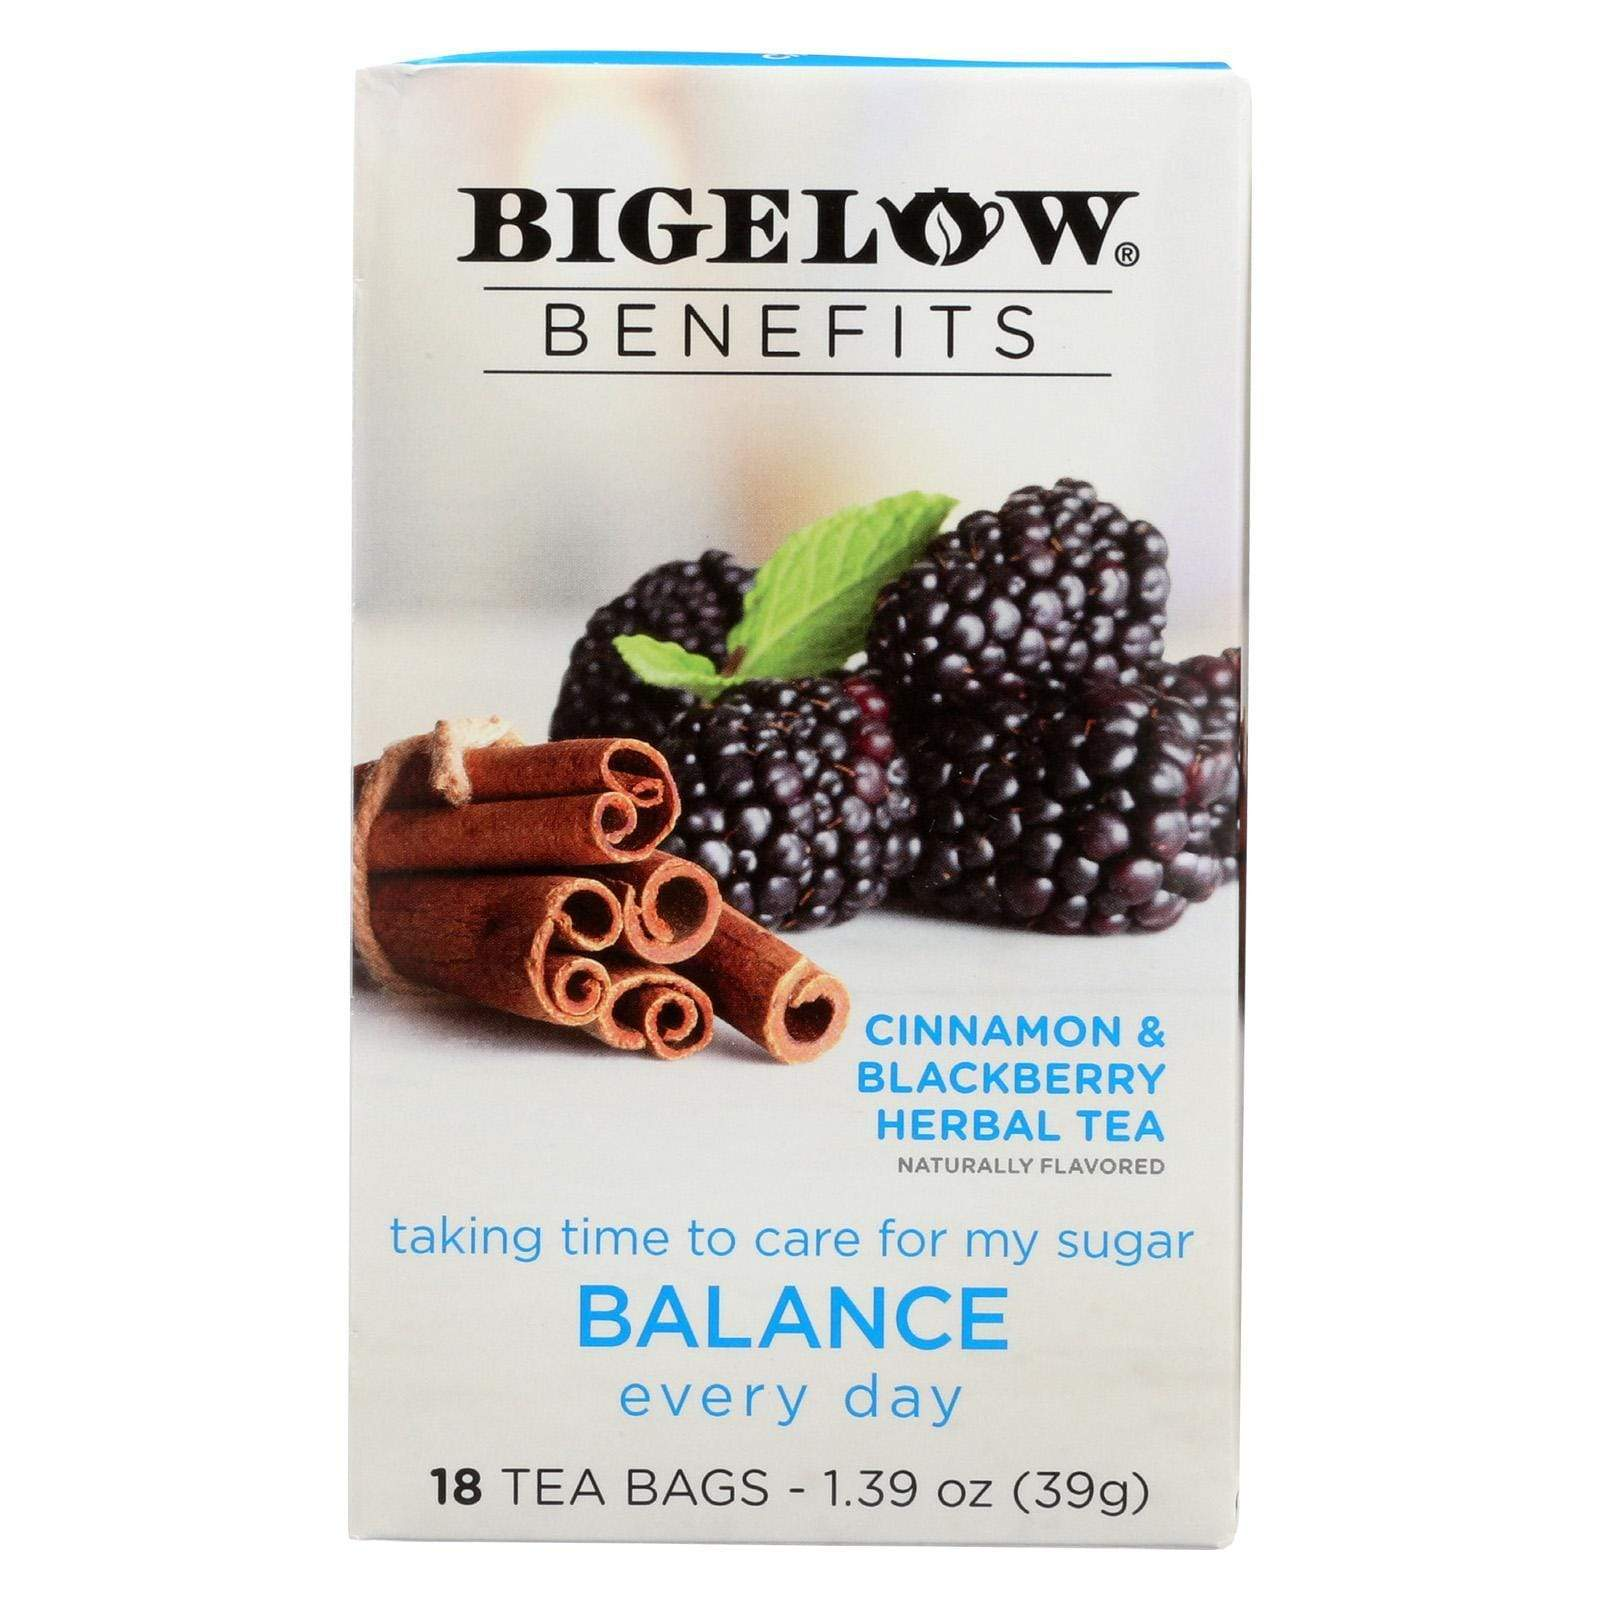 Bigelow Tea Teas, Coffee & Energy drinks Bigelow Tea Tea - Cinnamon Blackberry - Balance - Case Of 6 - 18 Bag